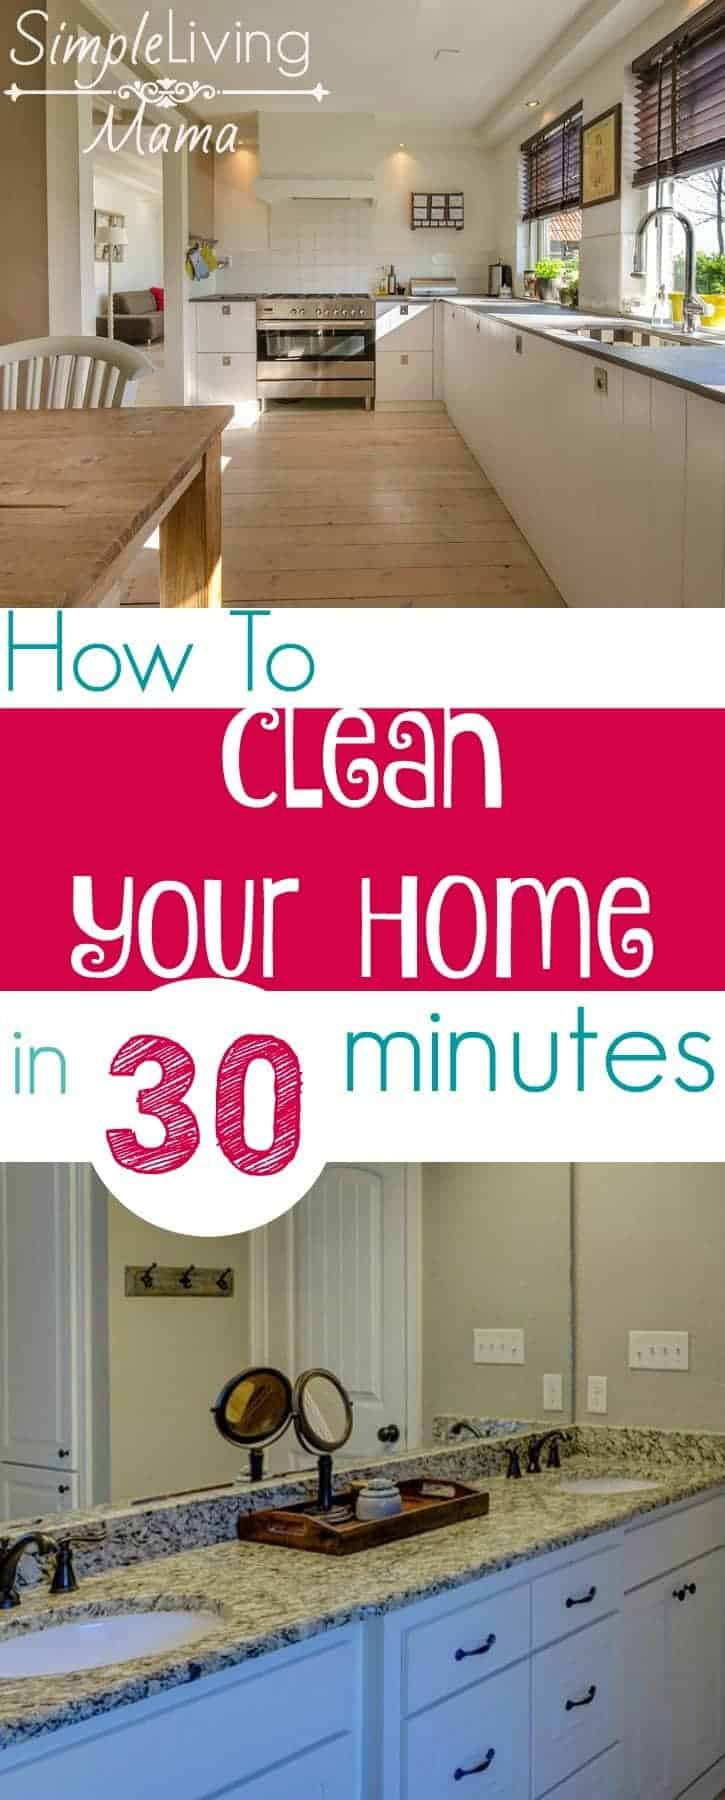 How to clean your home in 30 minutes